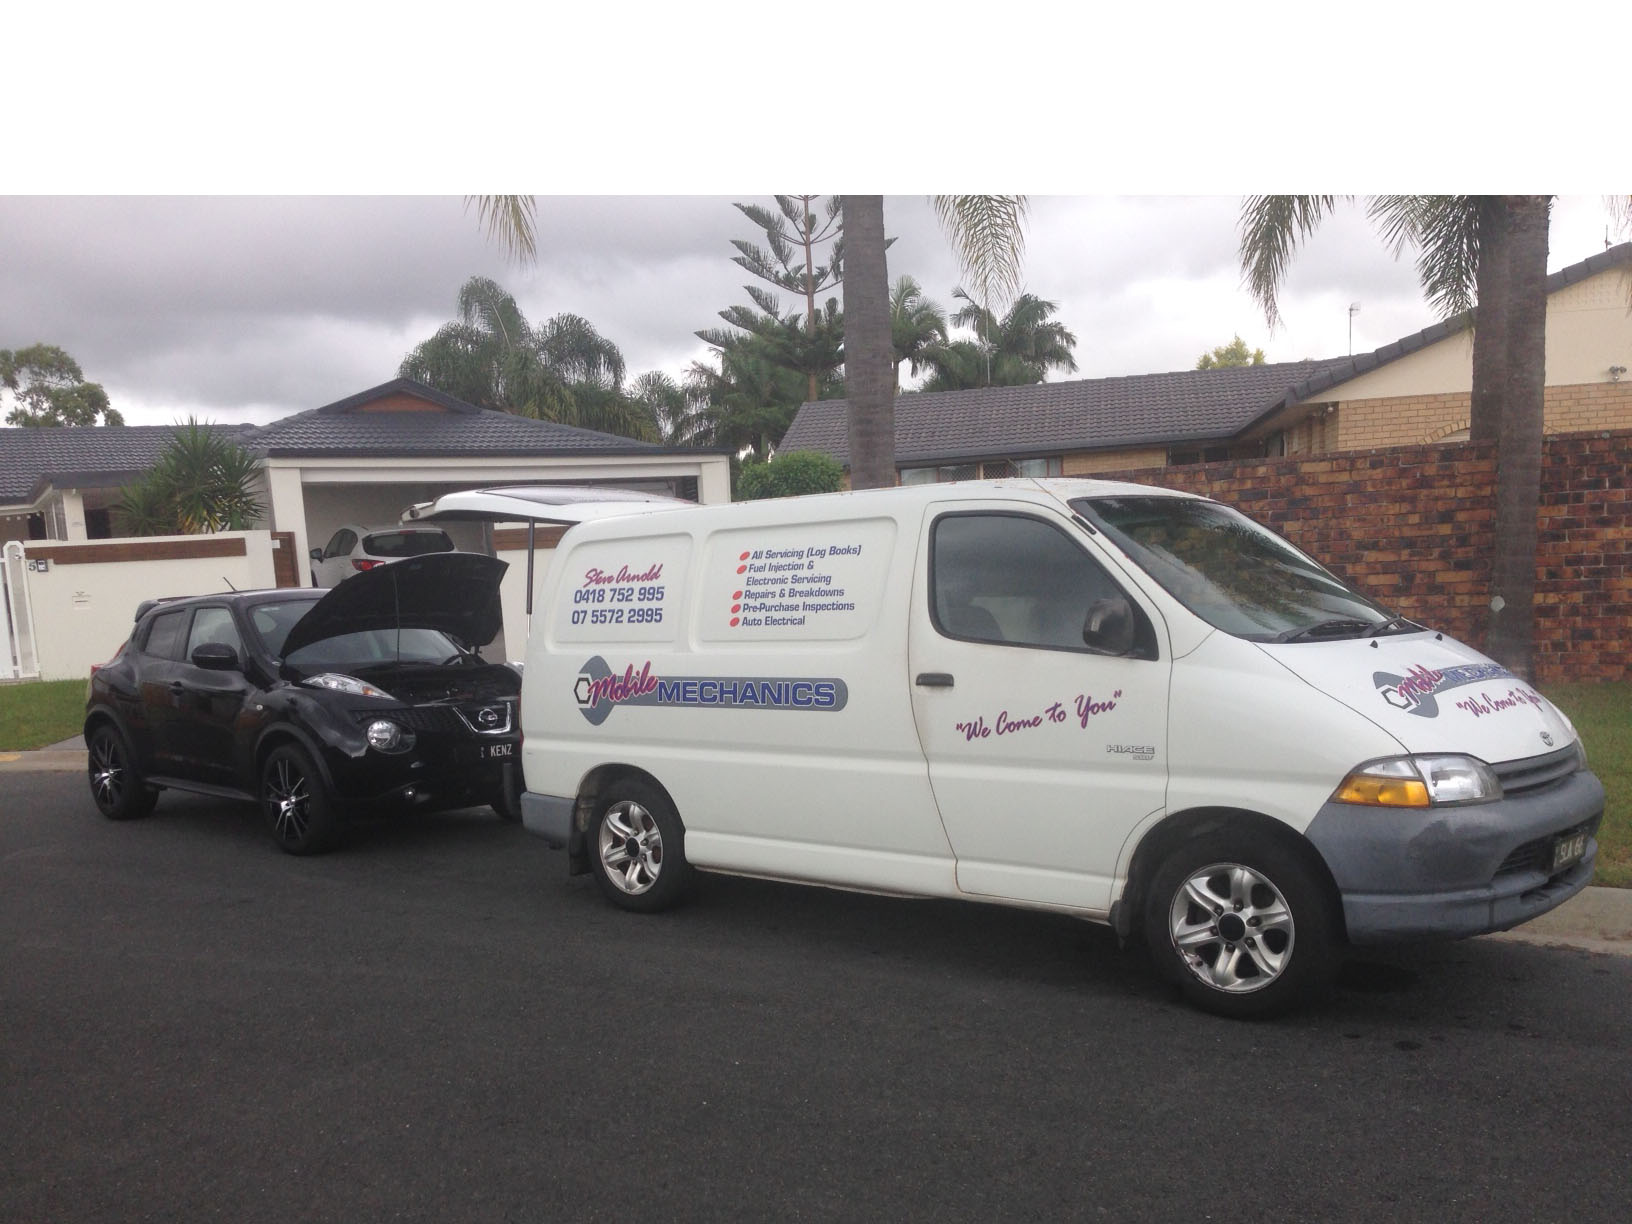 Mobile Mechanics Gold Coast